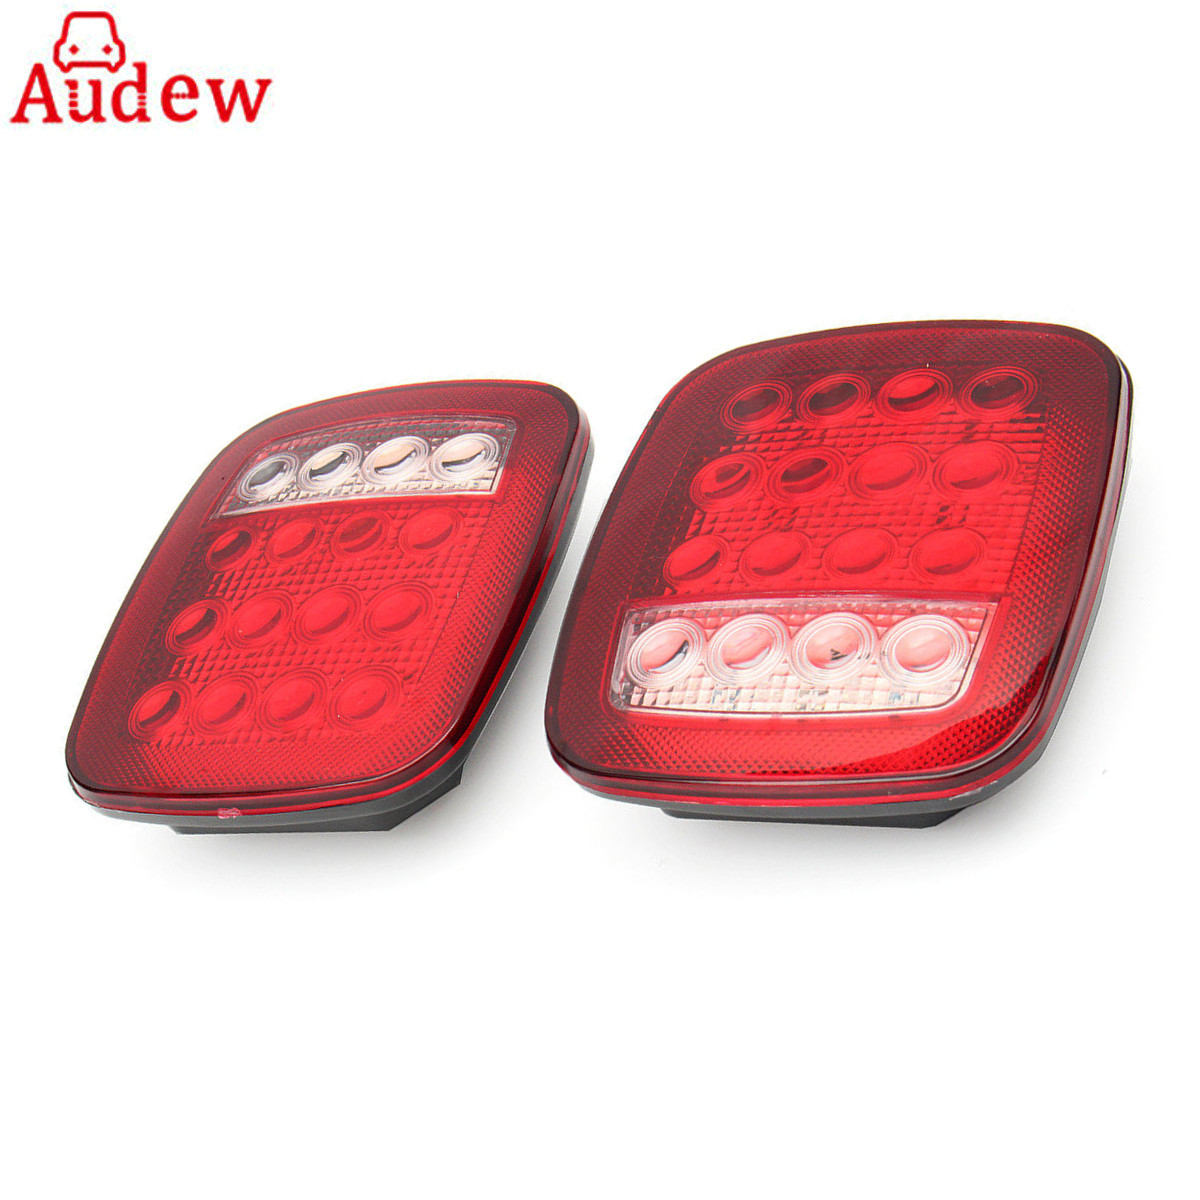 2Pcs 16 LED Car Tail Light Waterproof Truck Trailer Boat Stop Turn back up reverse Light Lamp  Red/White 2pcs lot red led light 25 31mm spst 6pin on off g128 boat rocker switch 16a 250v 20a 125v car dash dashboard truck rv atv home